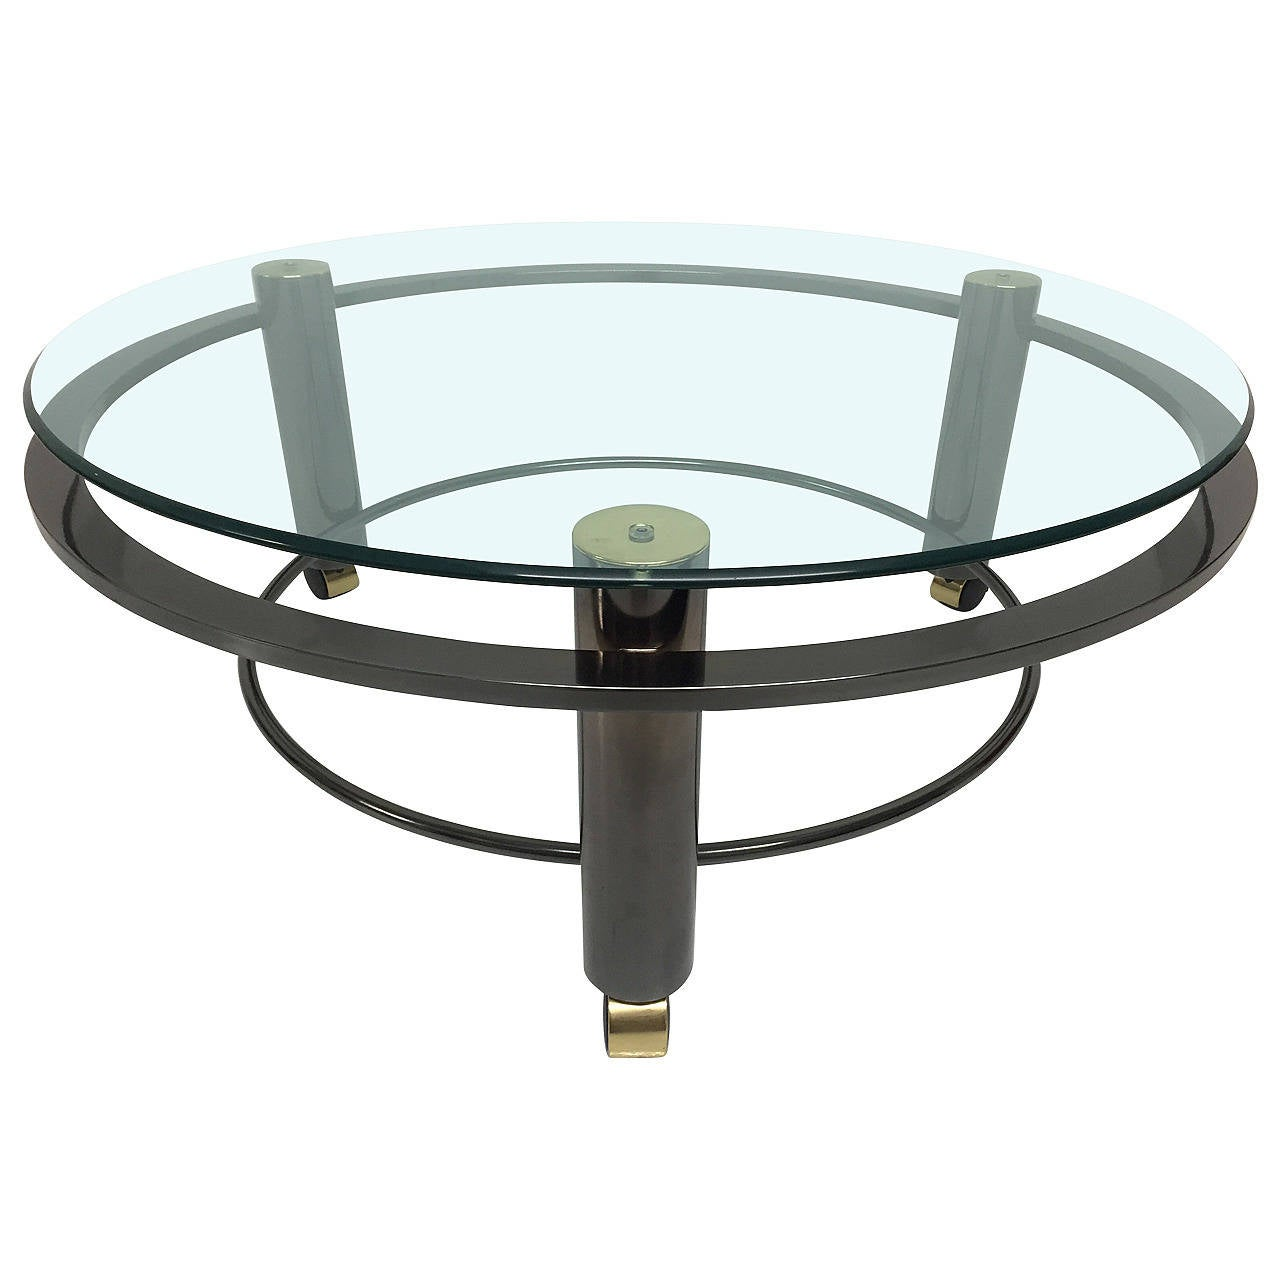 DIA, Design Institute of America Circular Gunmetal and Brass Coffee Table